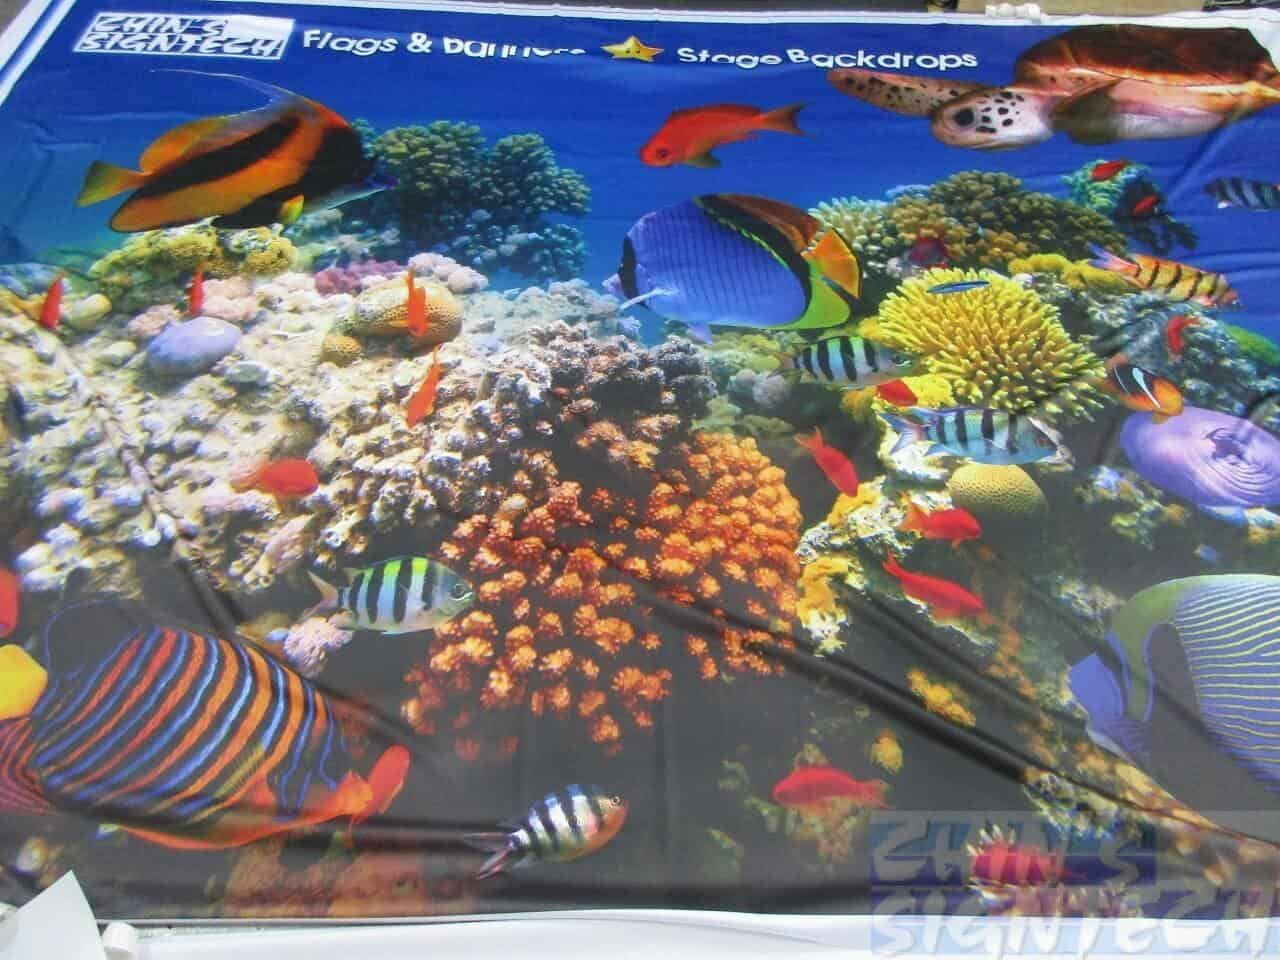 16 x 10ft Fabric printing on underwater world with fish